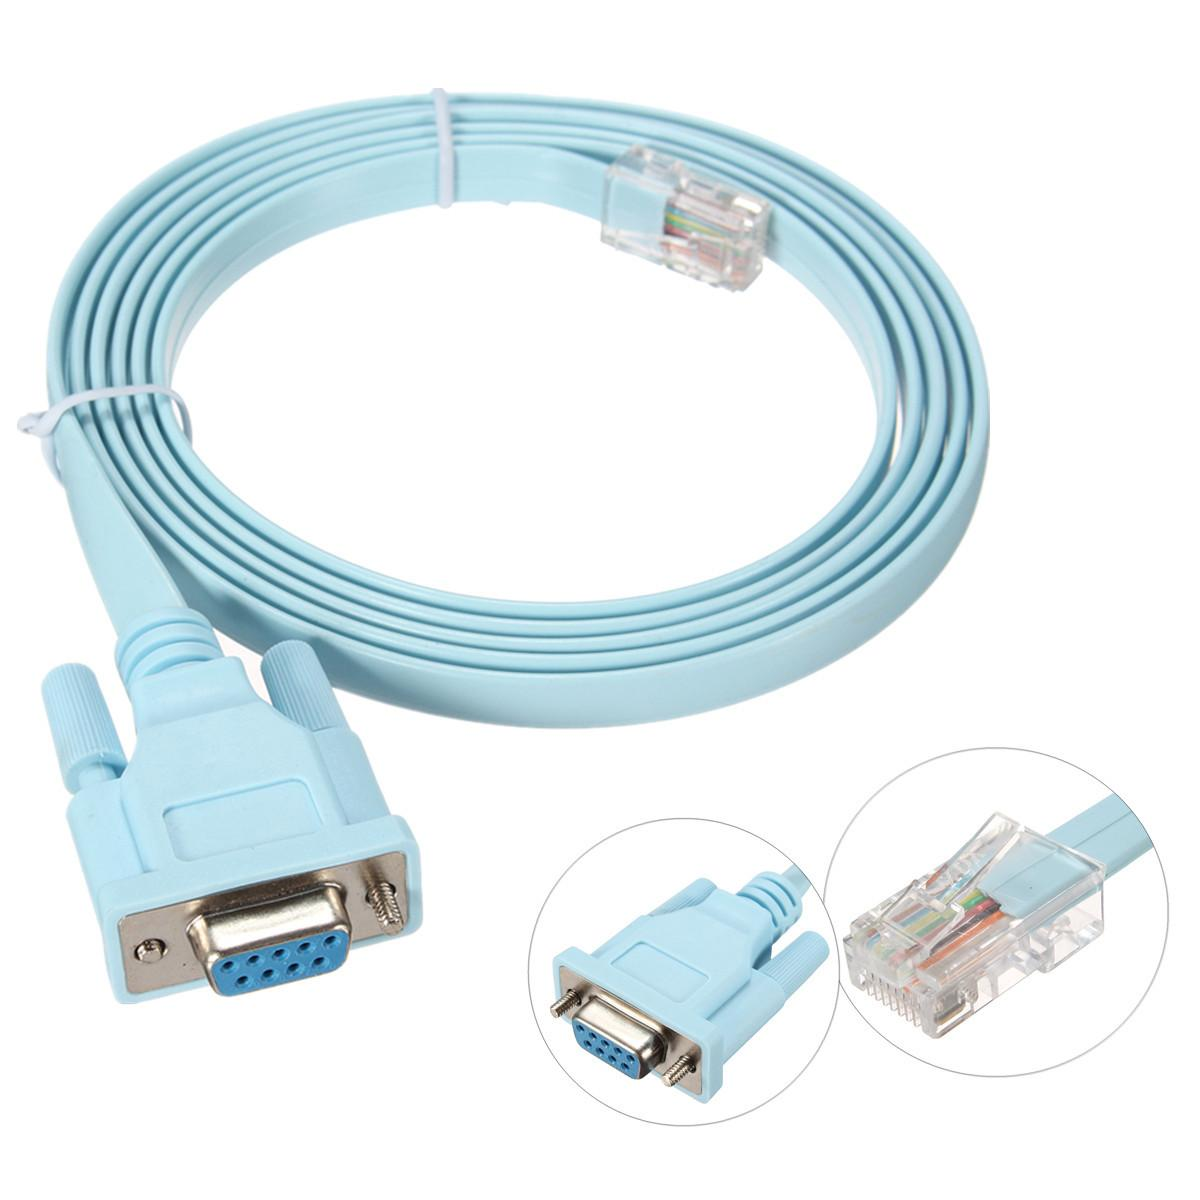 hight resolution of rj45 db9 cisco console cable wiring diagram wiring schematic diagramusb cable wiring diagram 2018 1